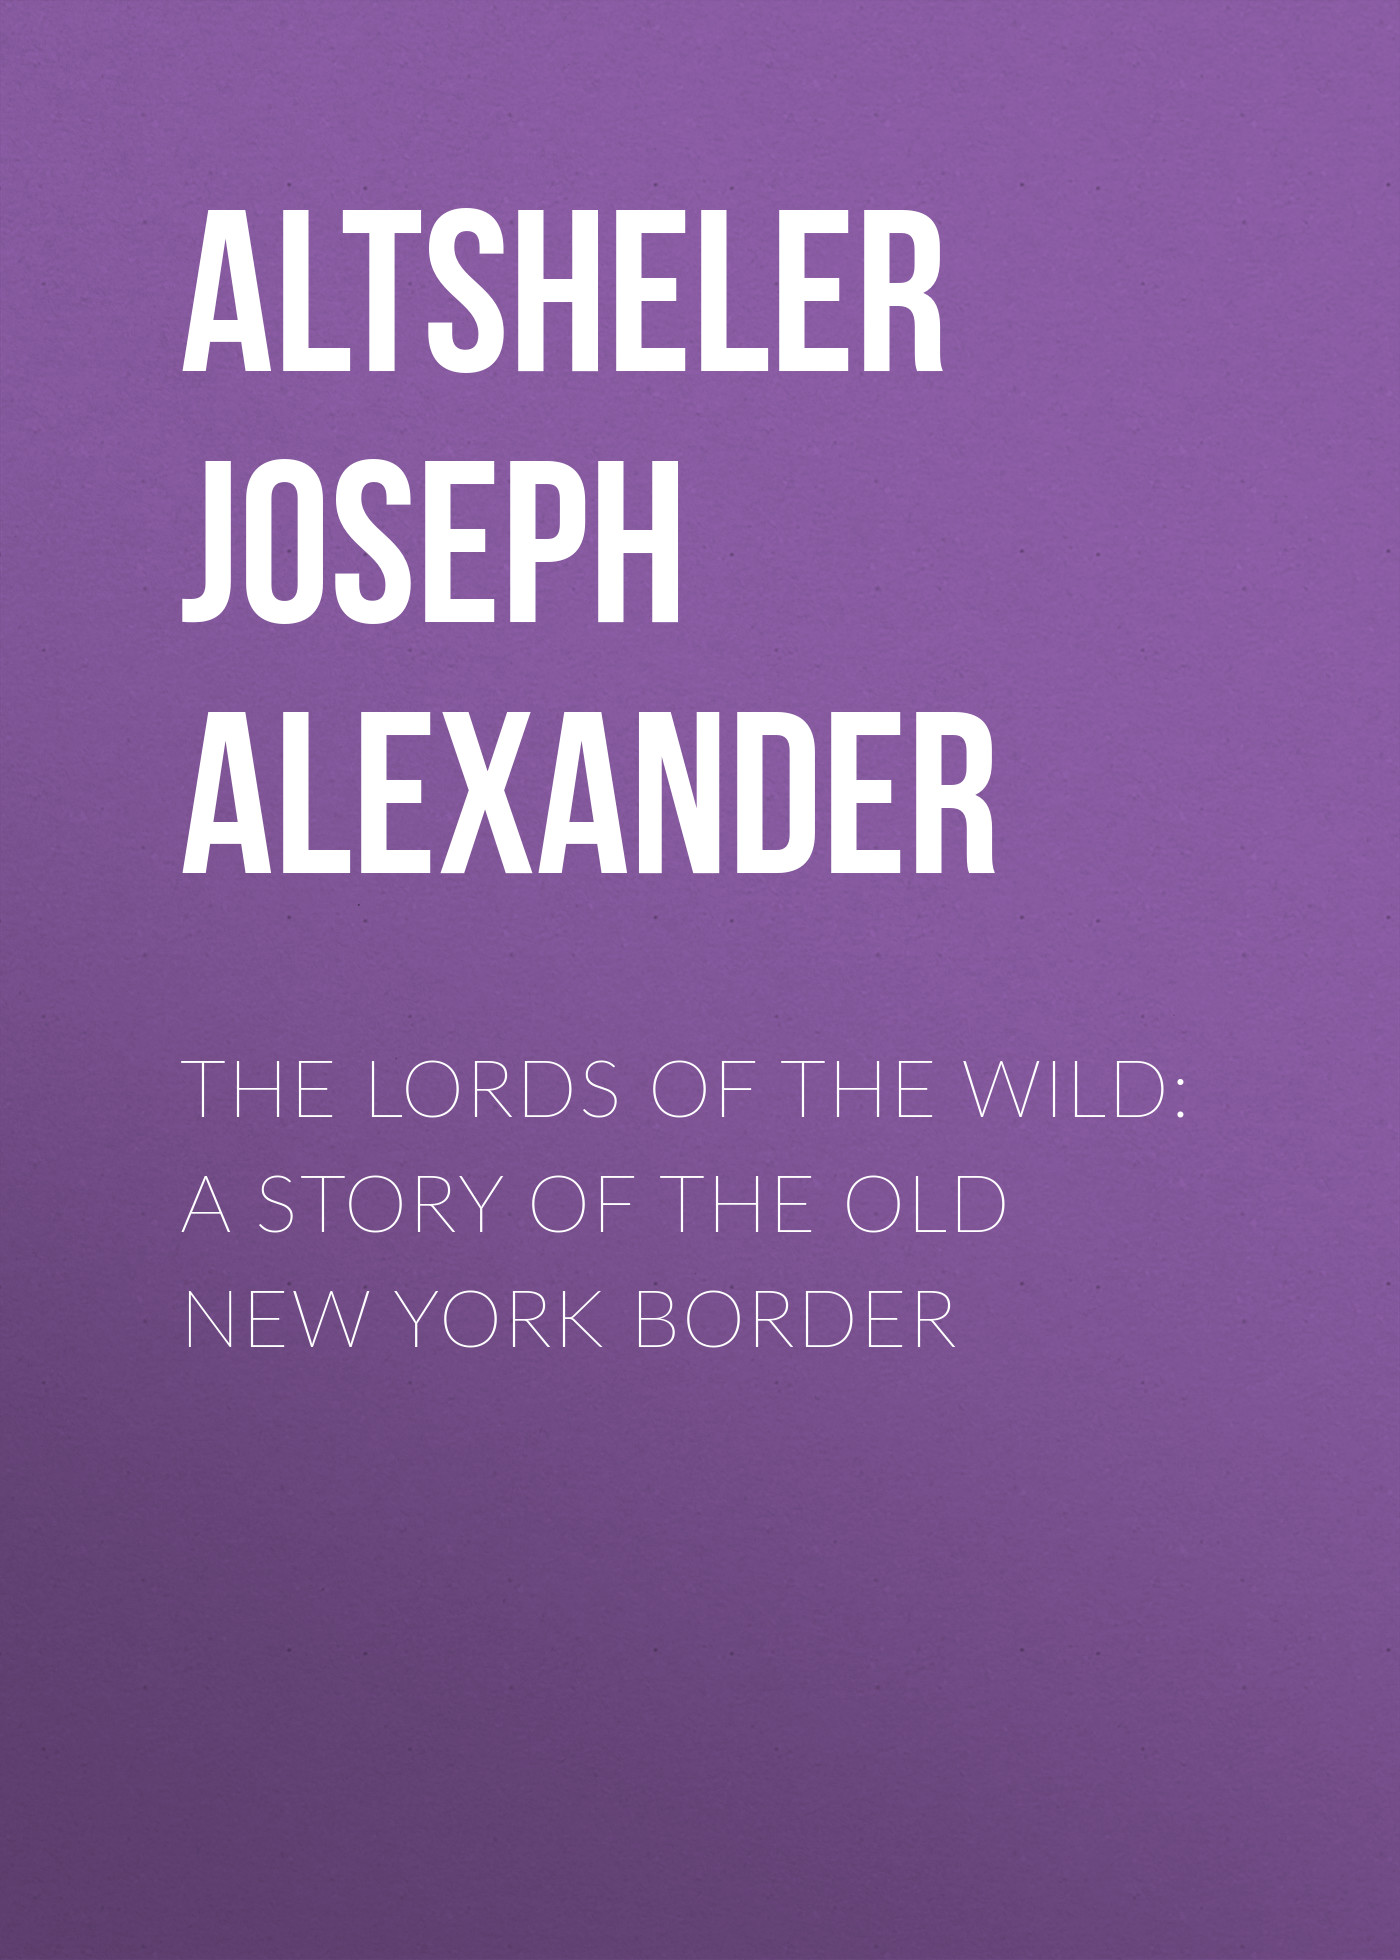 цена на Altsheler Joseph Alexander The Lords of the Wild: A Story of the Old New York Border